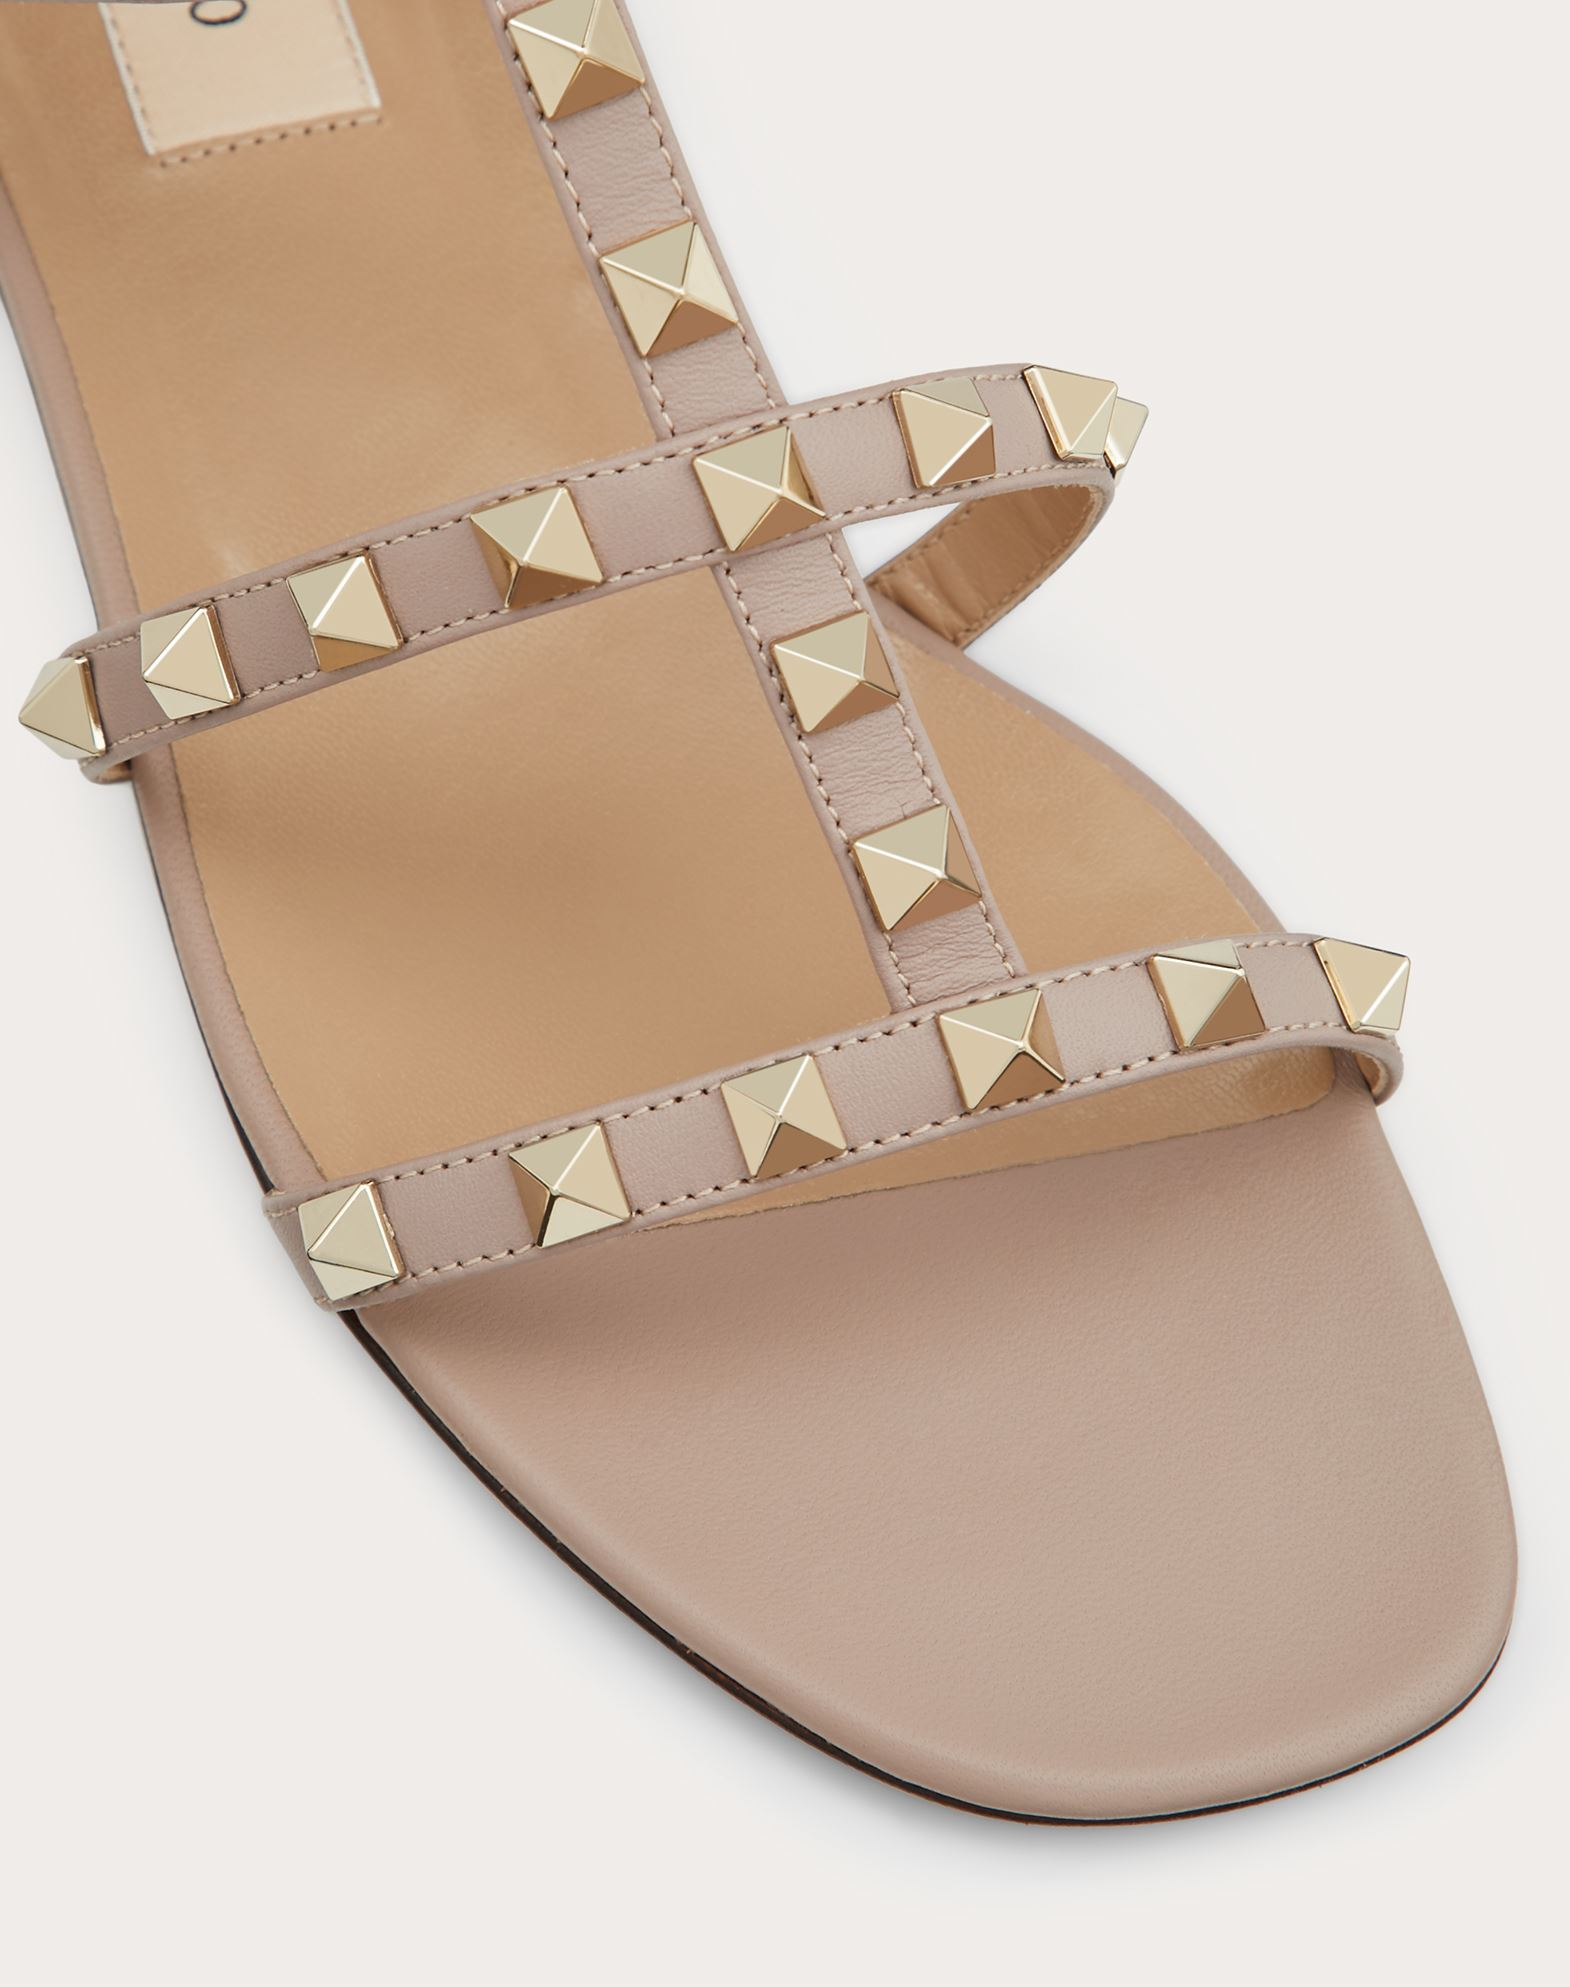 VALENTINO Studs Square toeline Solid colour Leather sole Side buckle closure  45390790aq